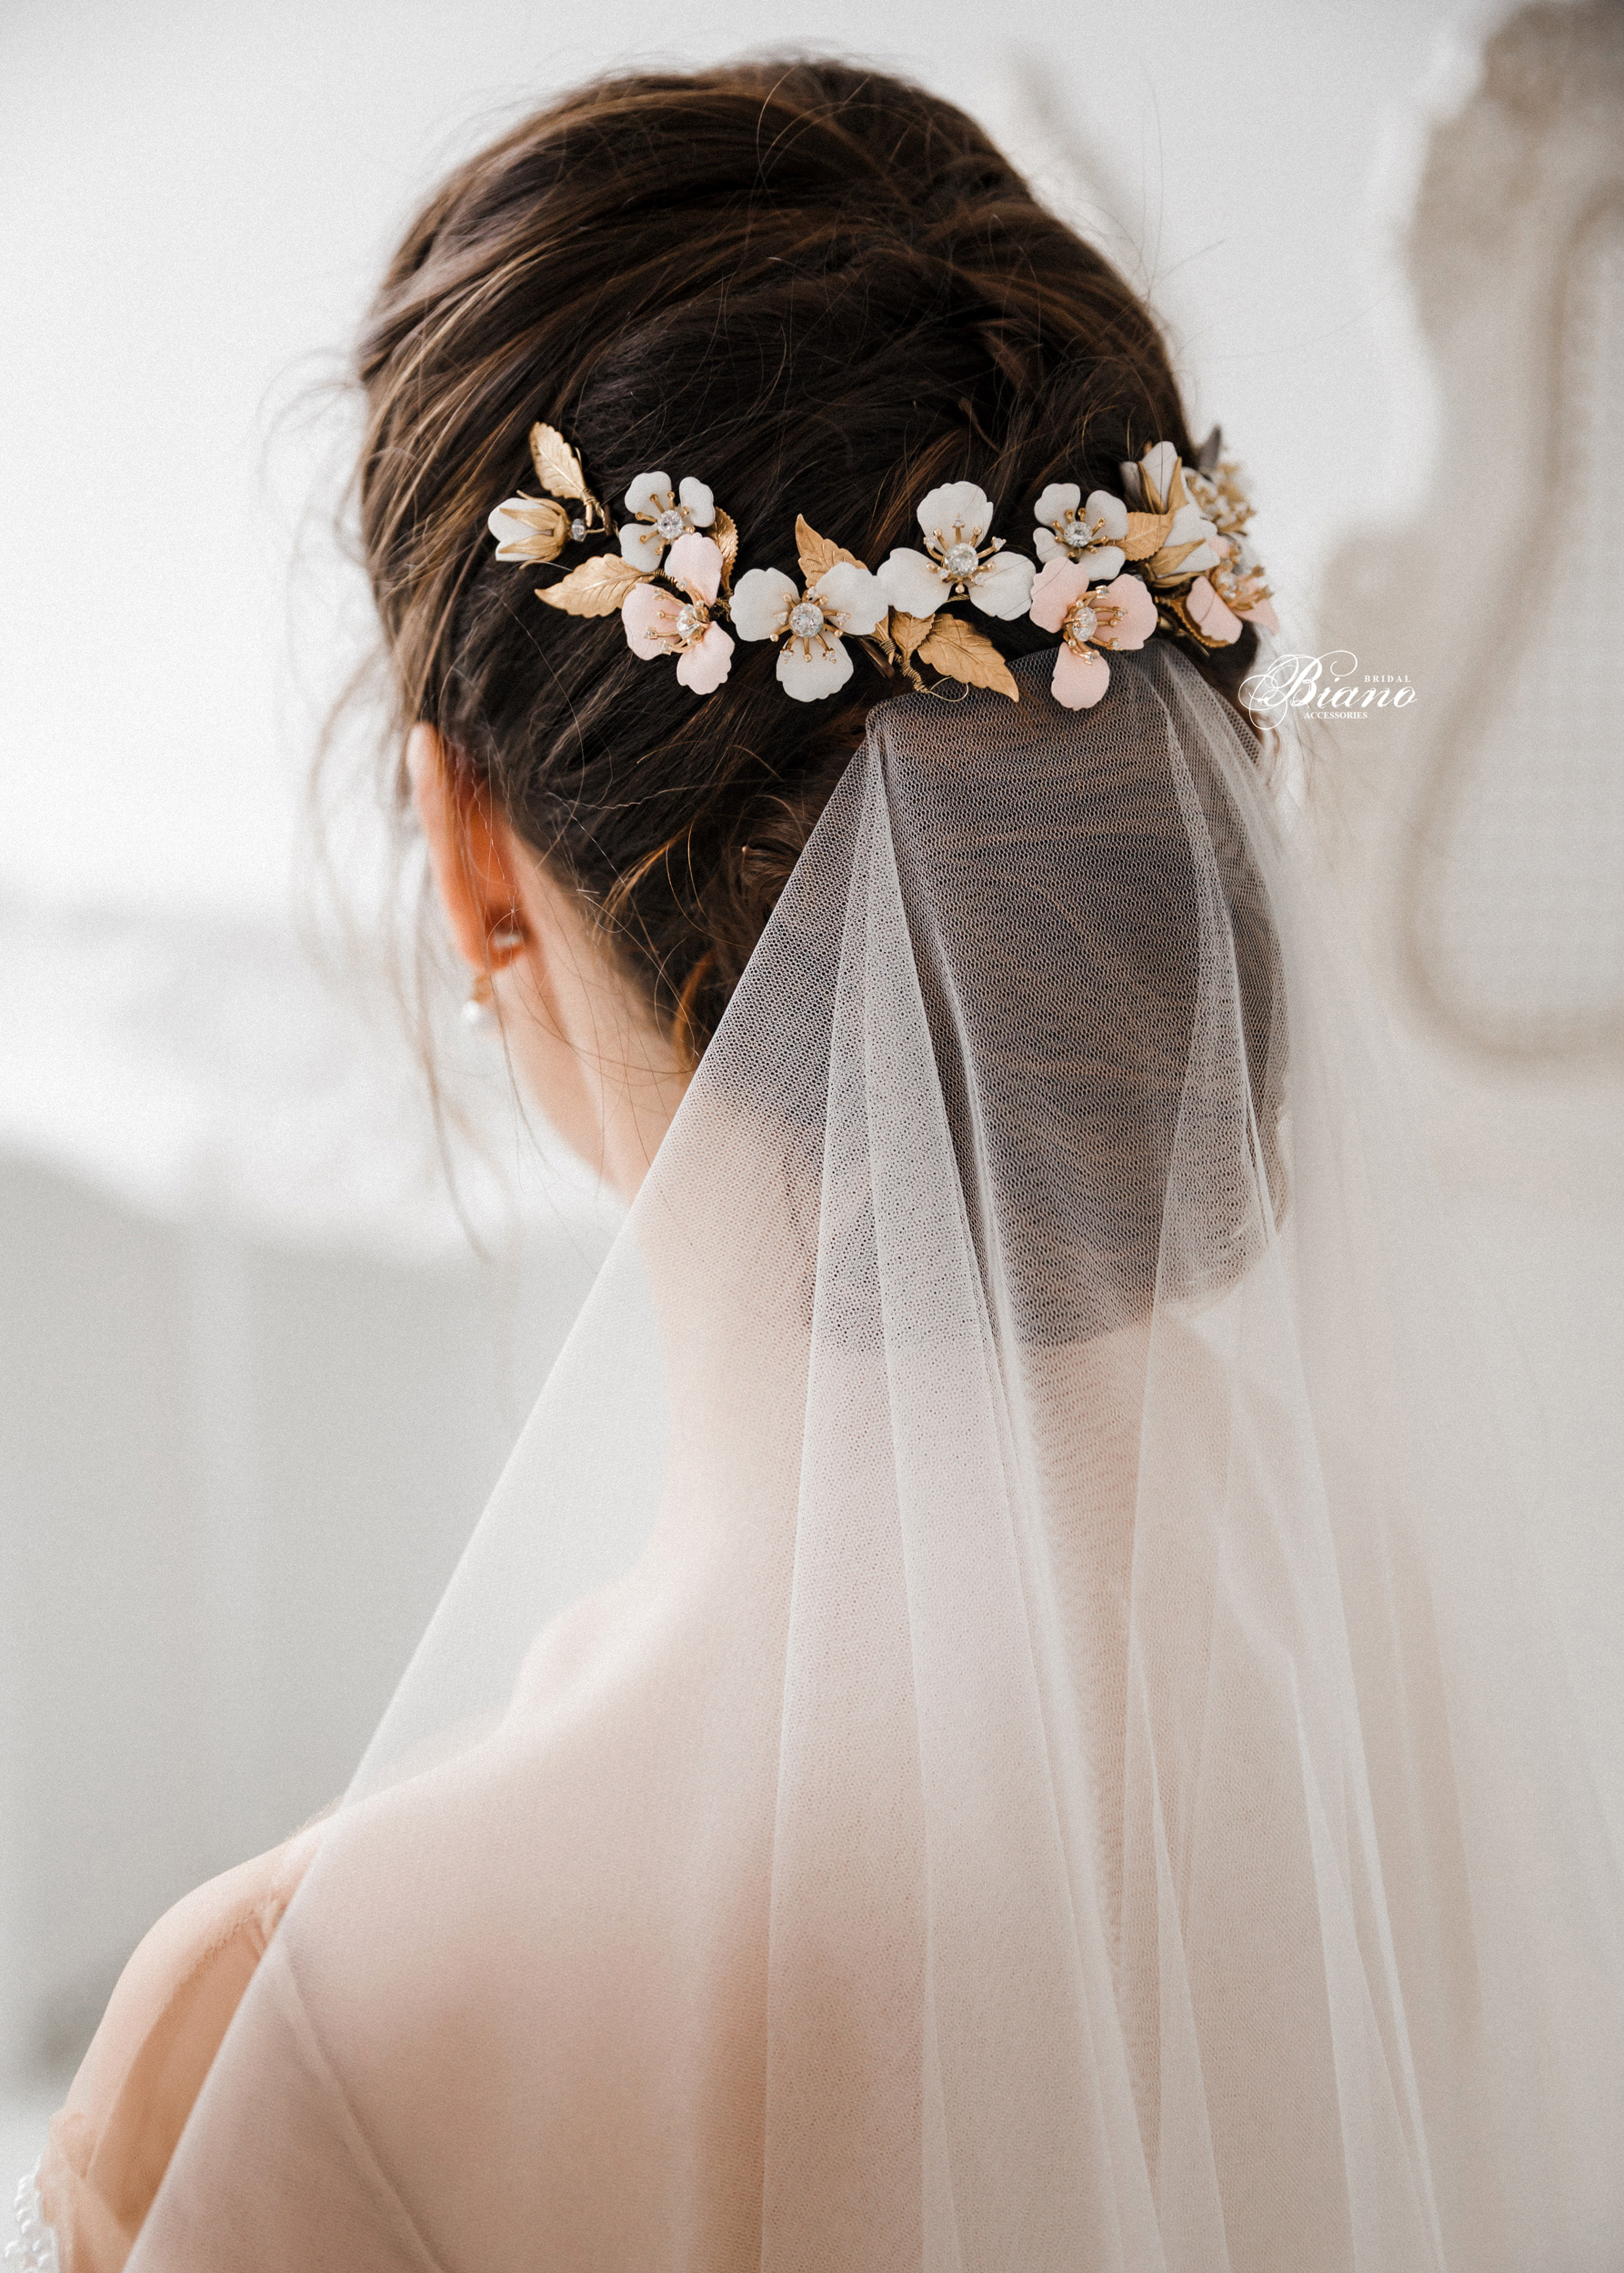 Find your perfect Floral Bridal Back Comb - Handmade in SwitzerlandUnique DesignPossibility to Rush OrdersFree Shipping WorldwideCustomisable OrdersFast response on your questions